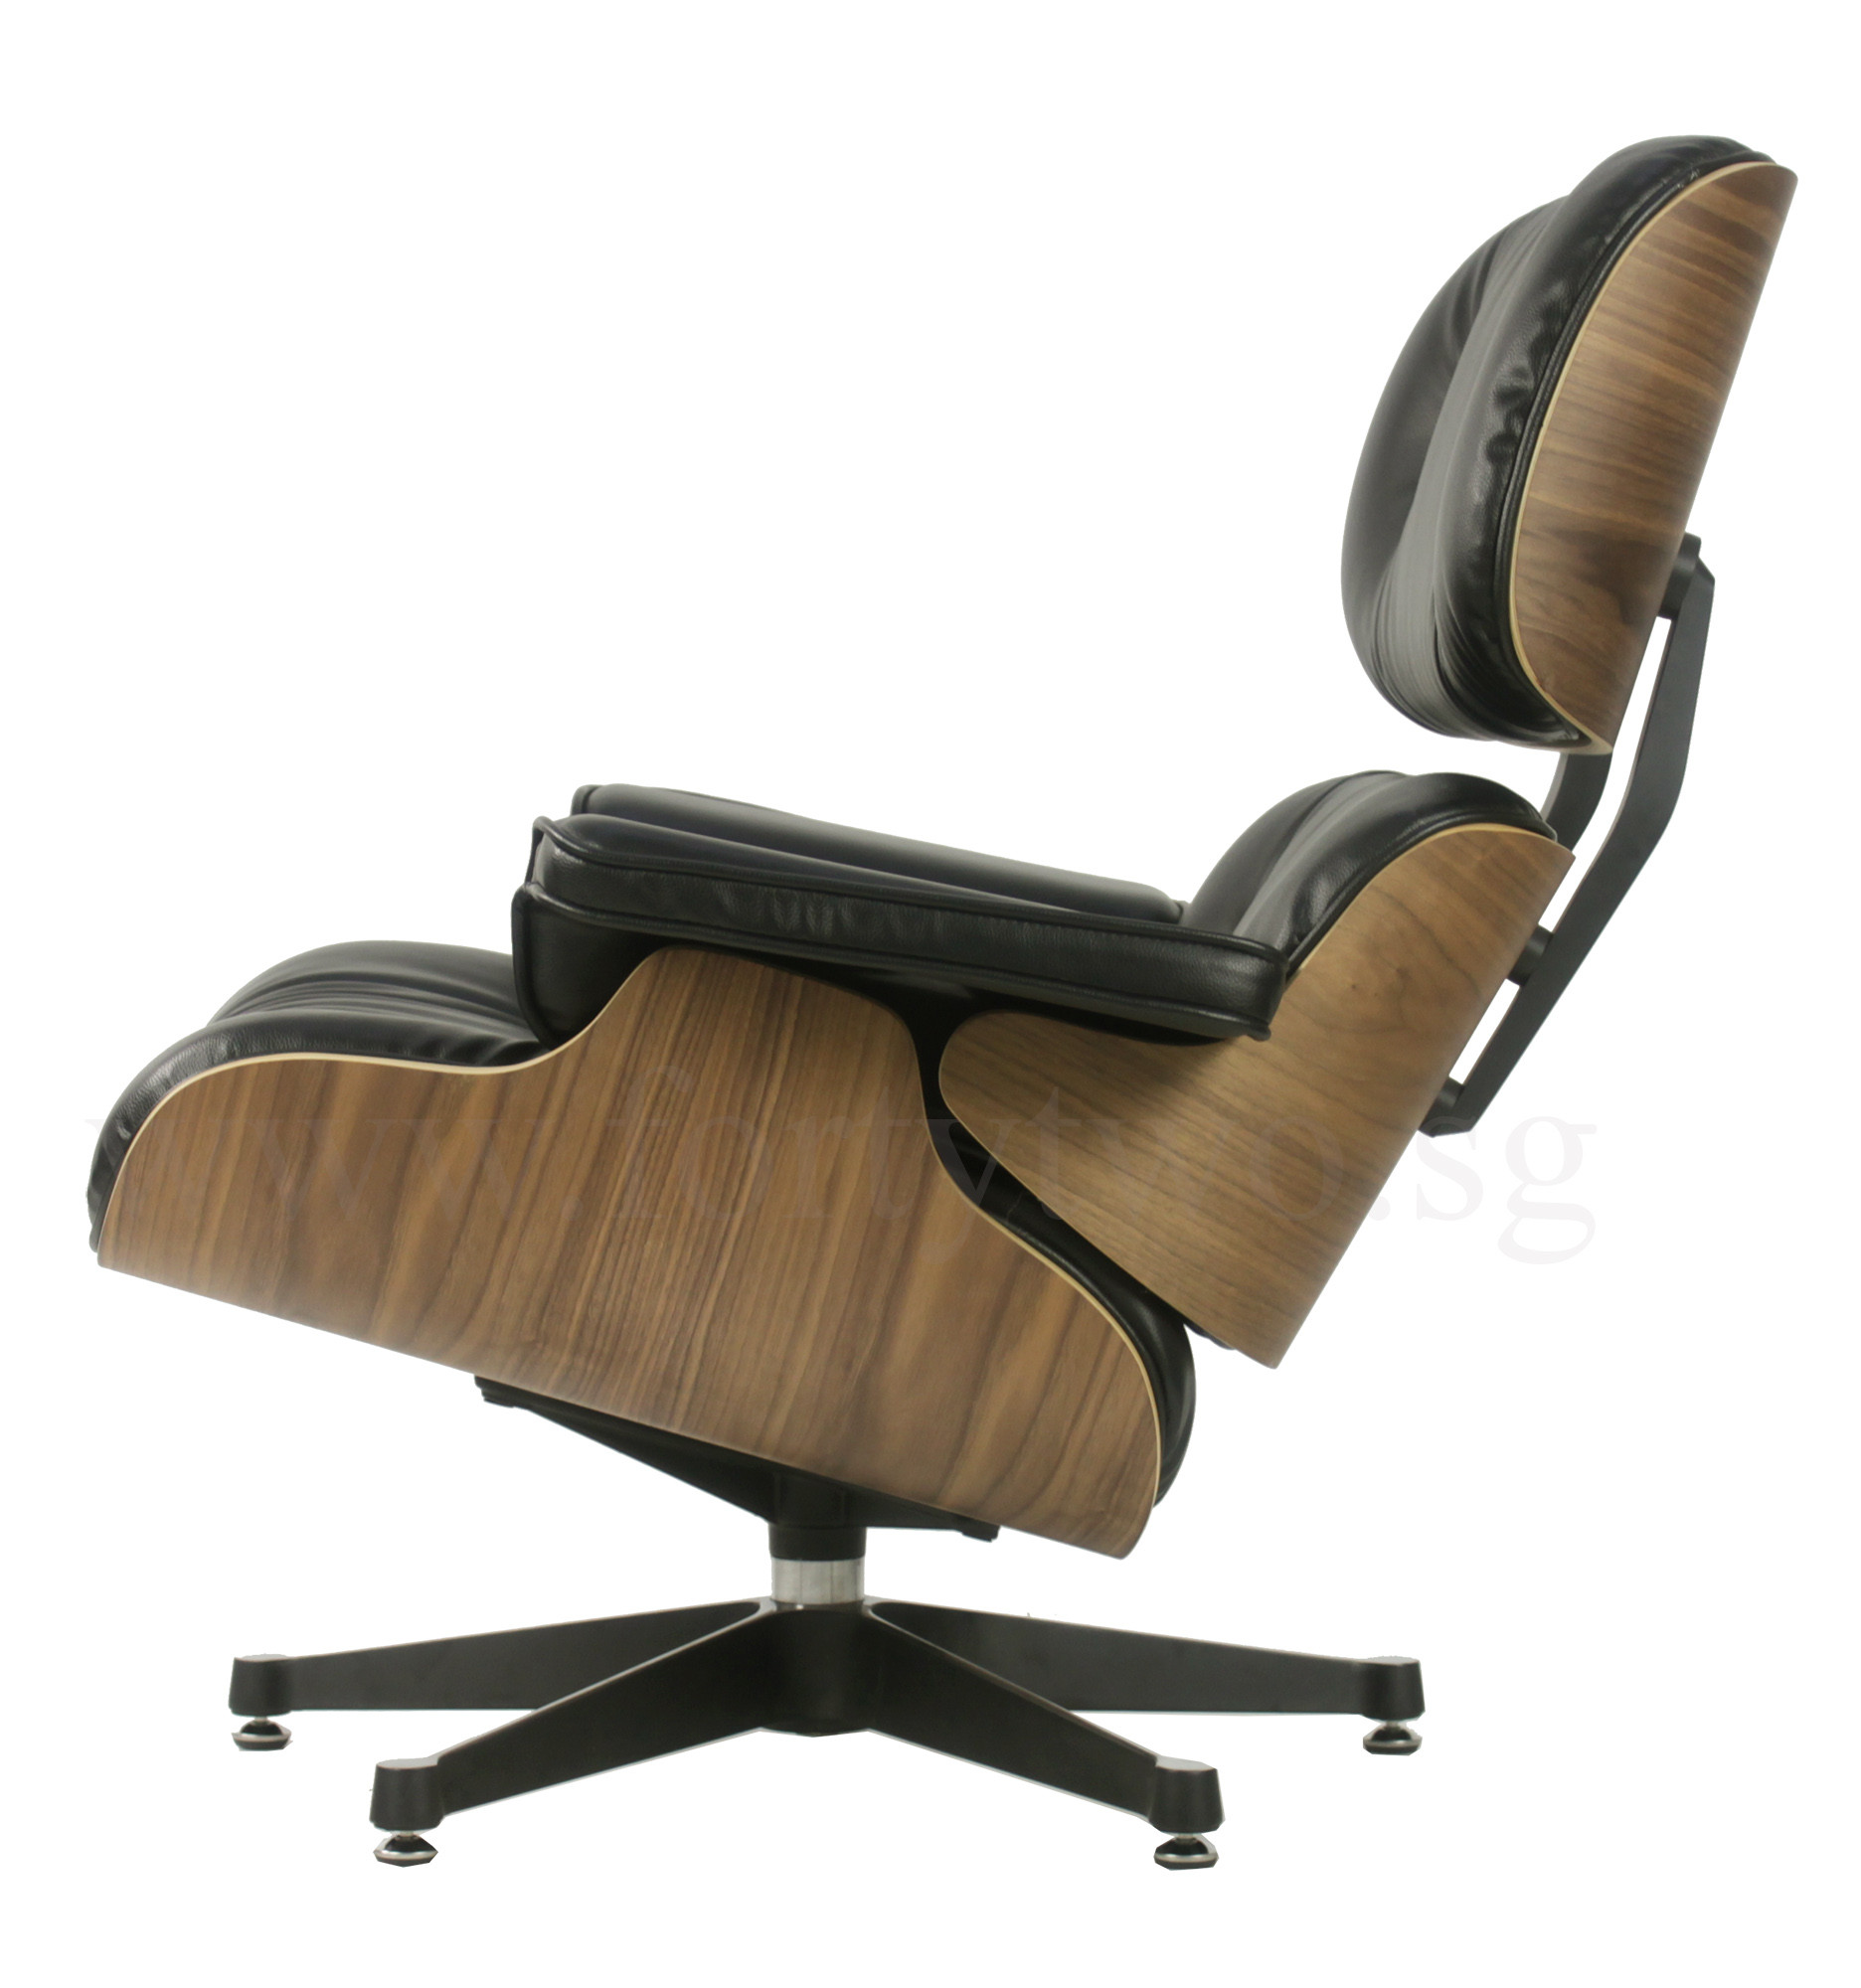 Eames Lounge Stoel Replica.Eames Replica Lounge Chair Black Leather